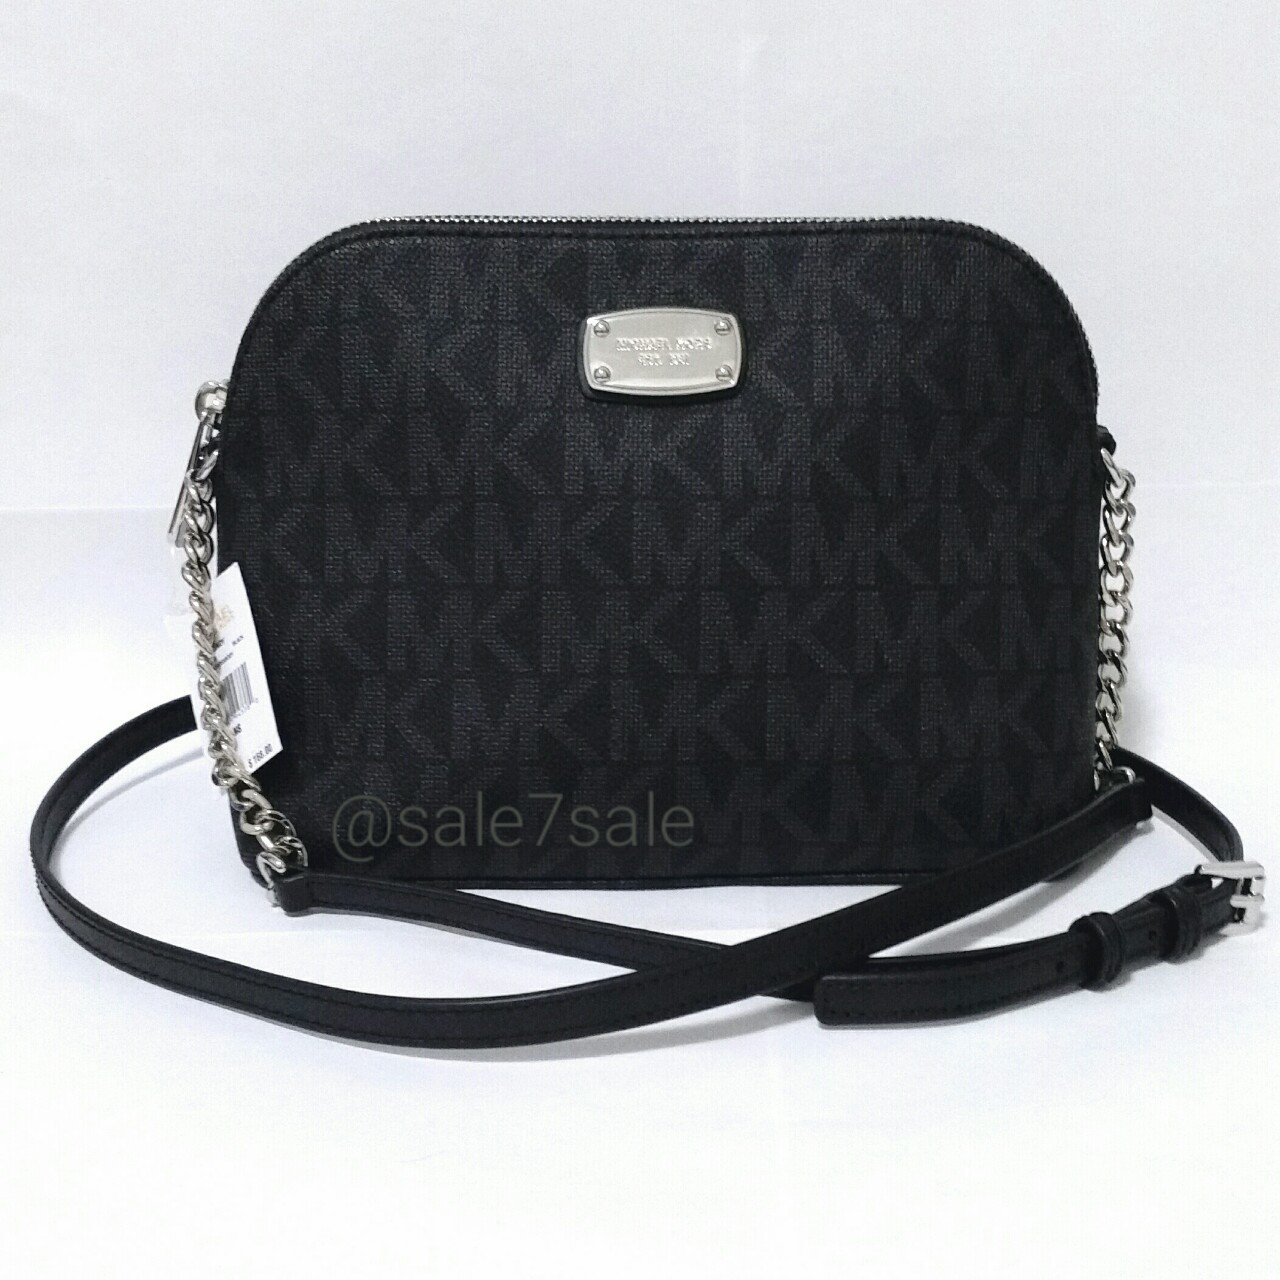 4c377712b1d9  sale7sale. last year. United States. NWT MK Cindy Dome Crossbody Bag Black